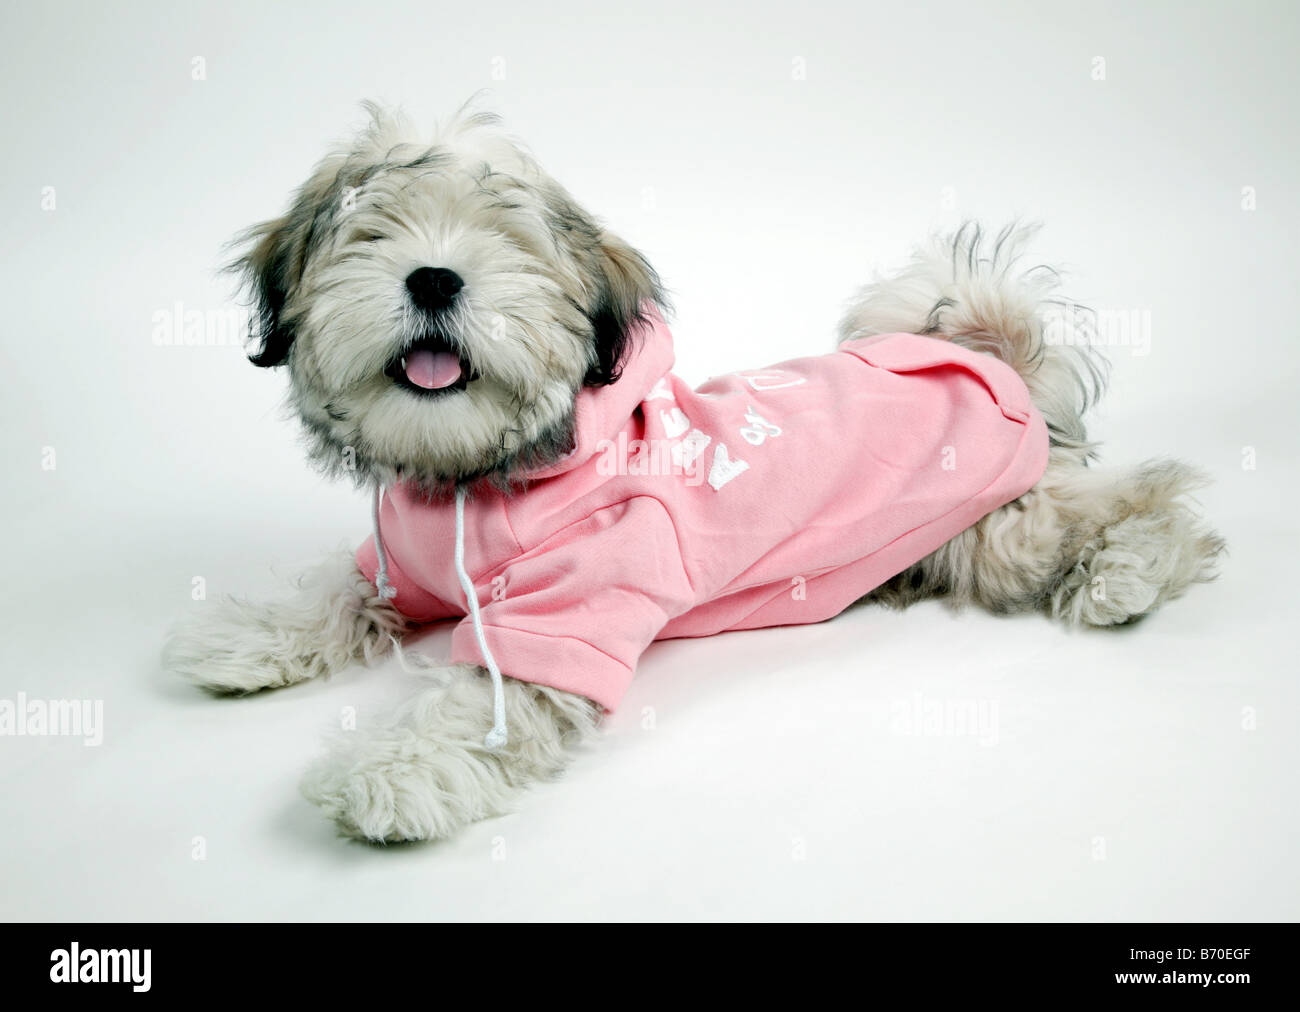 Young Puppy Modeling A Hoodie Stock Photo 21524399 Alamy